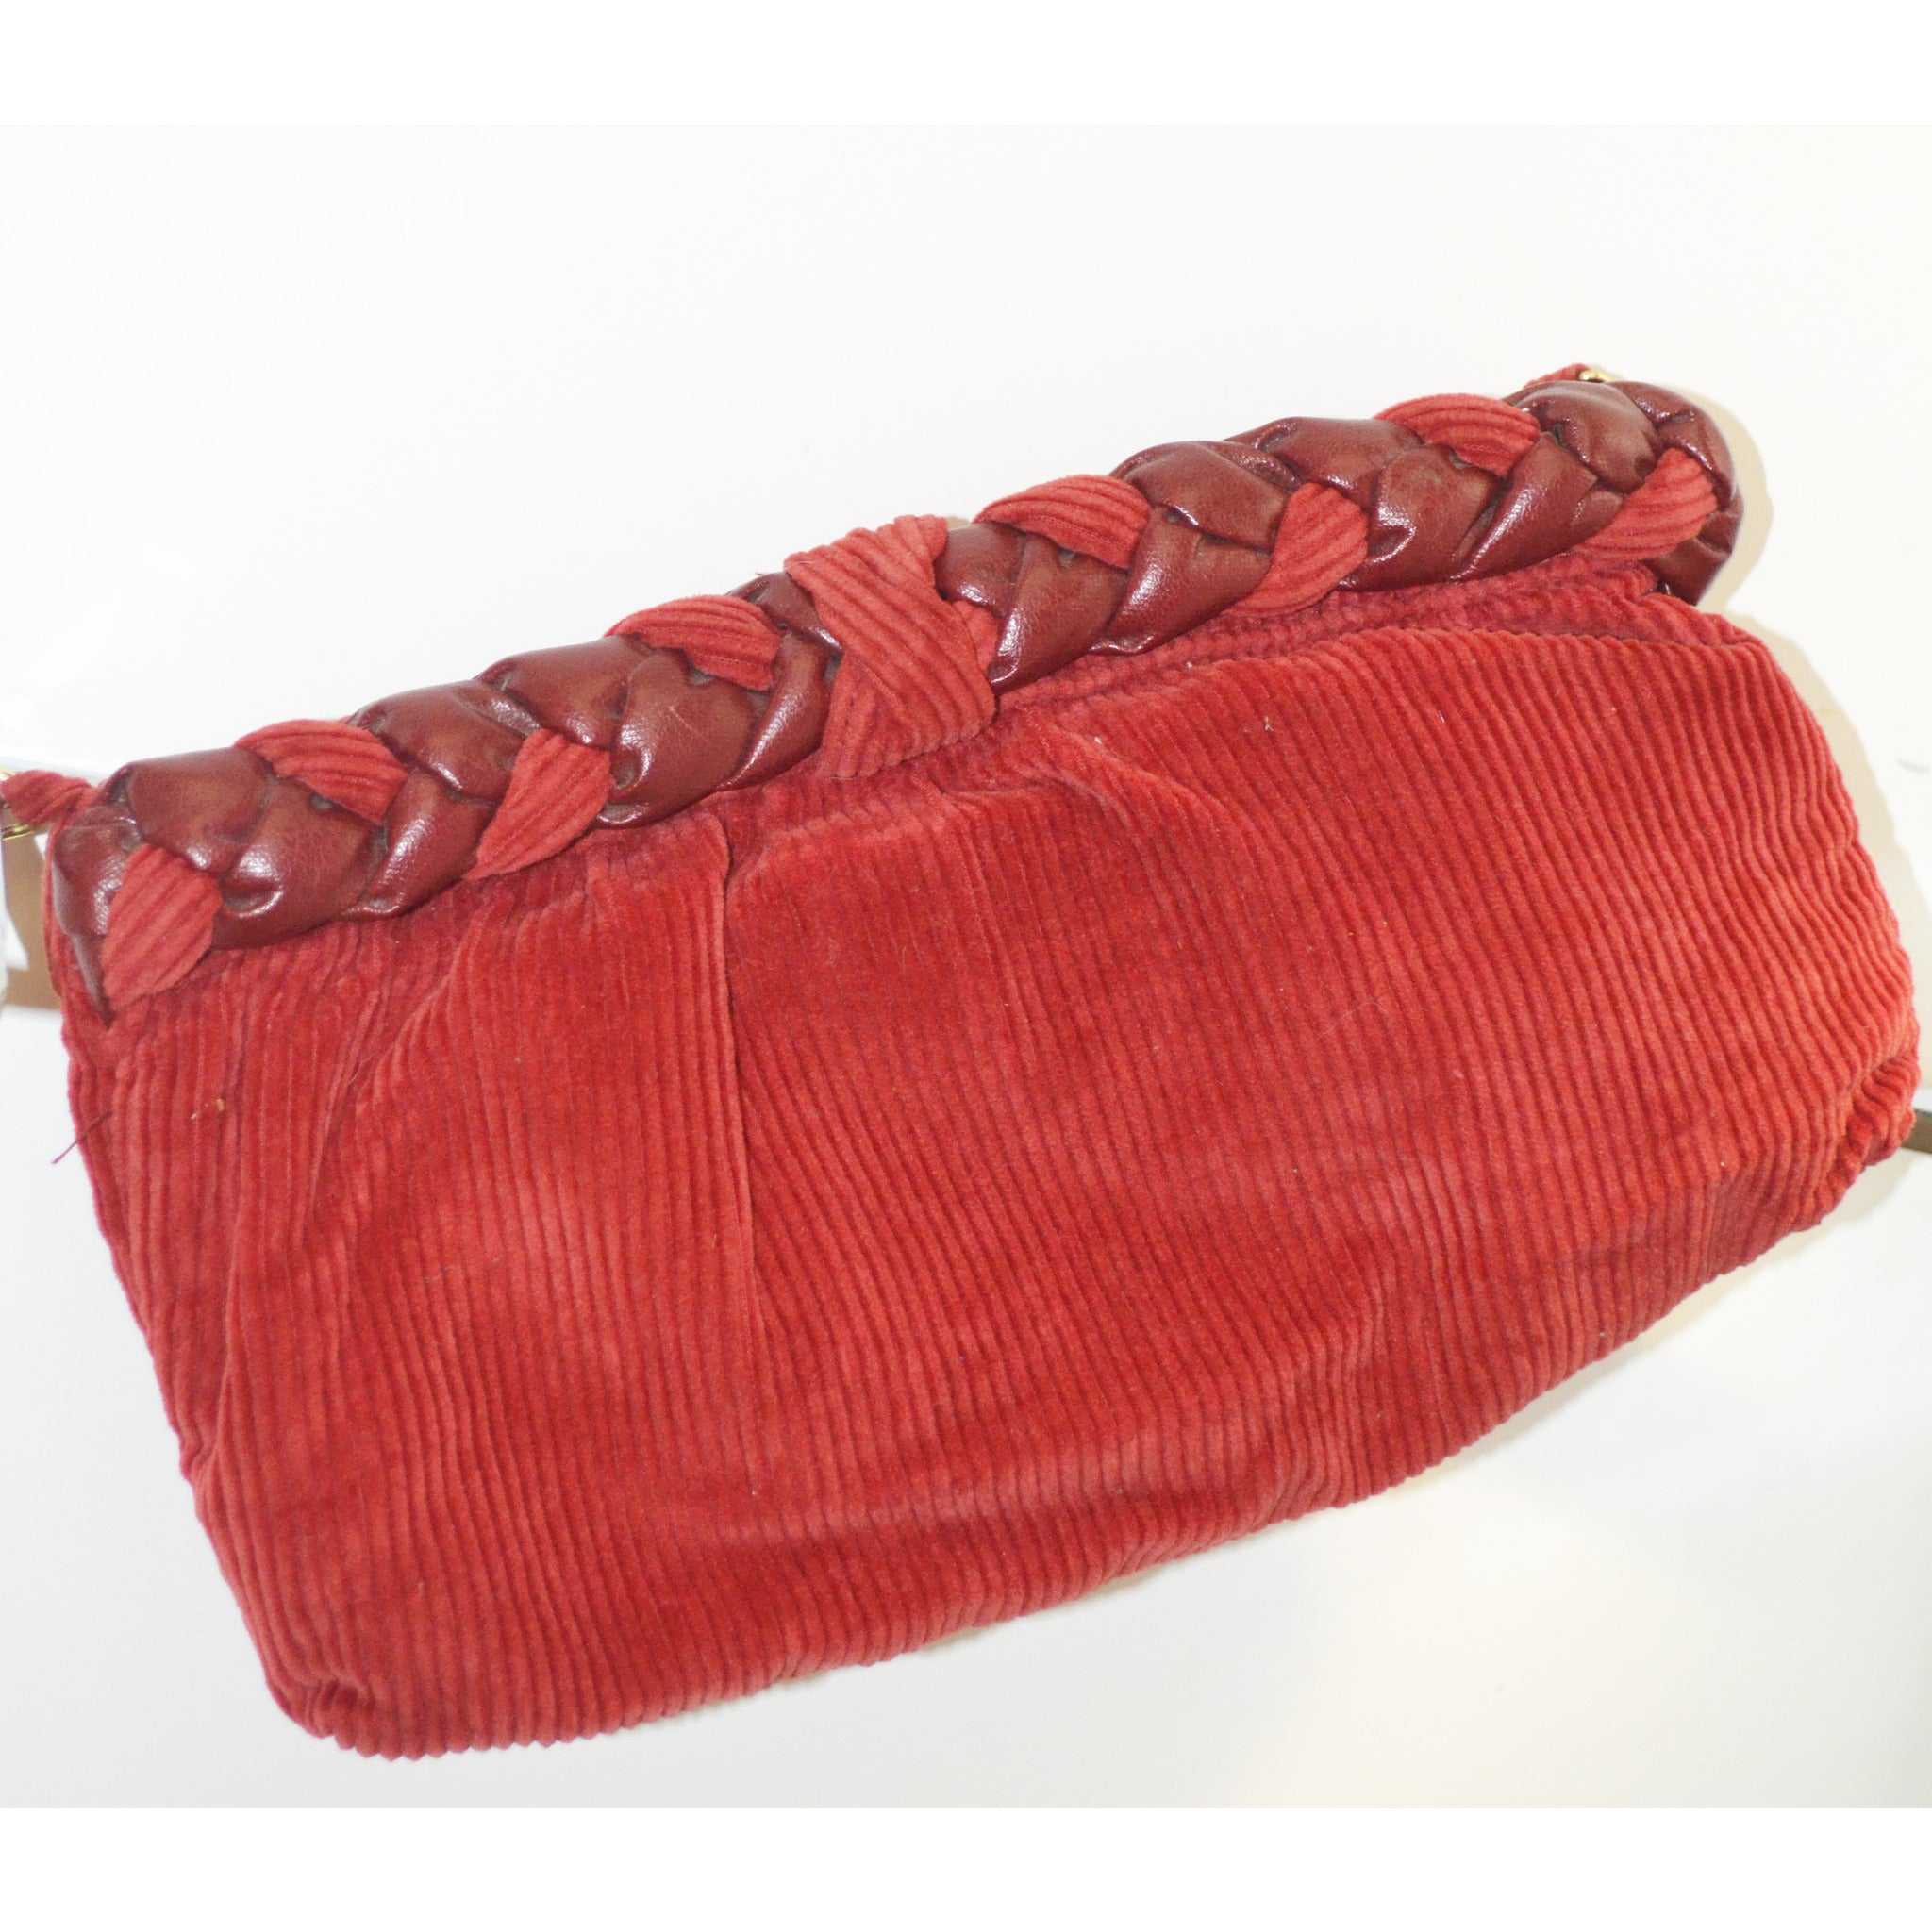 Vintage Burgundy Braided Corduroy Clutch Purse